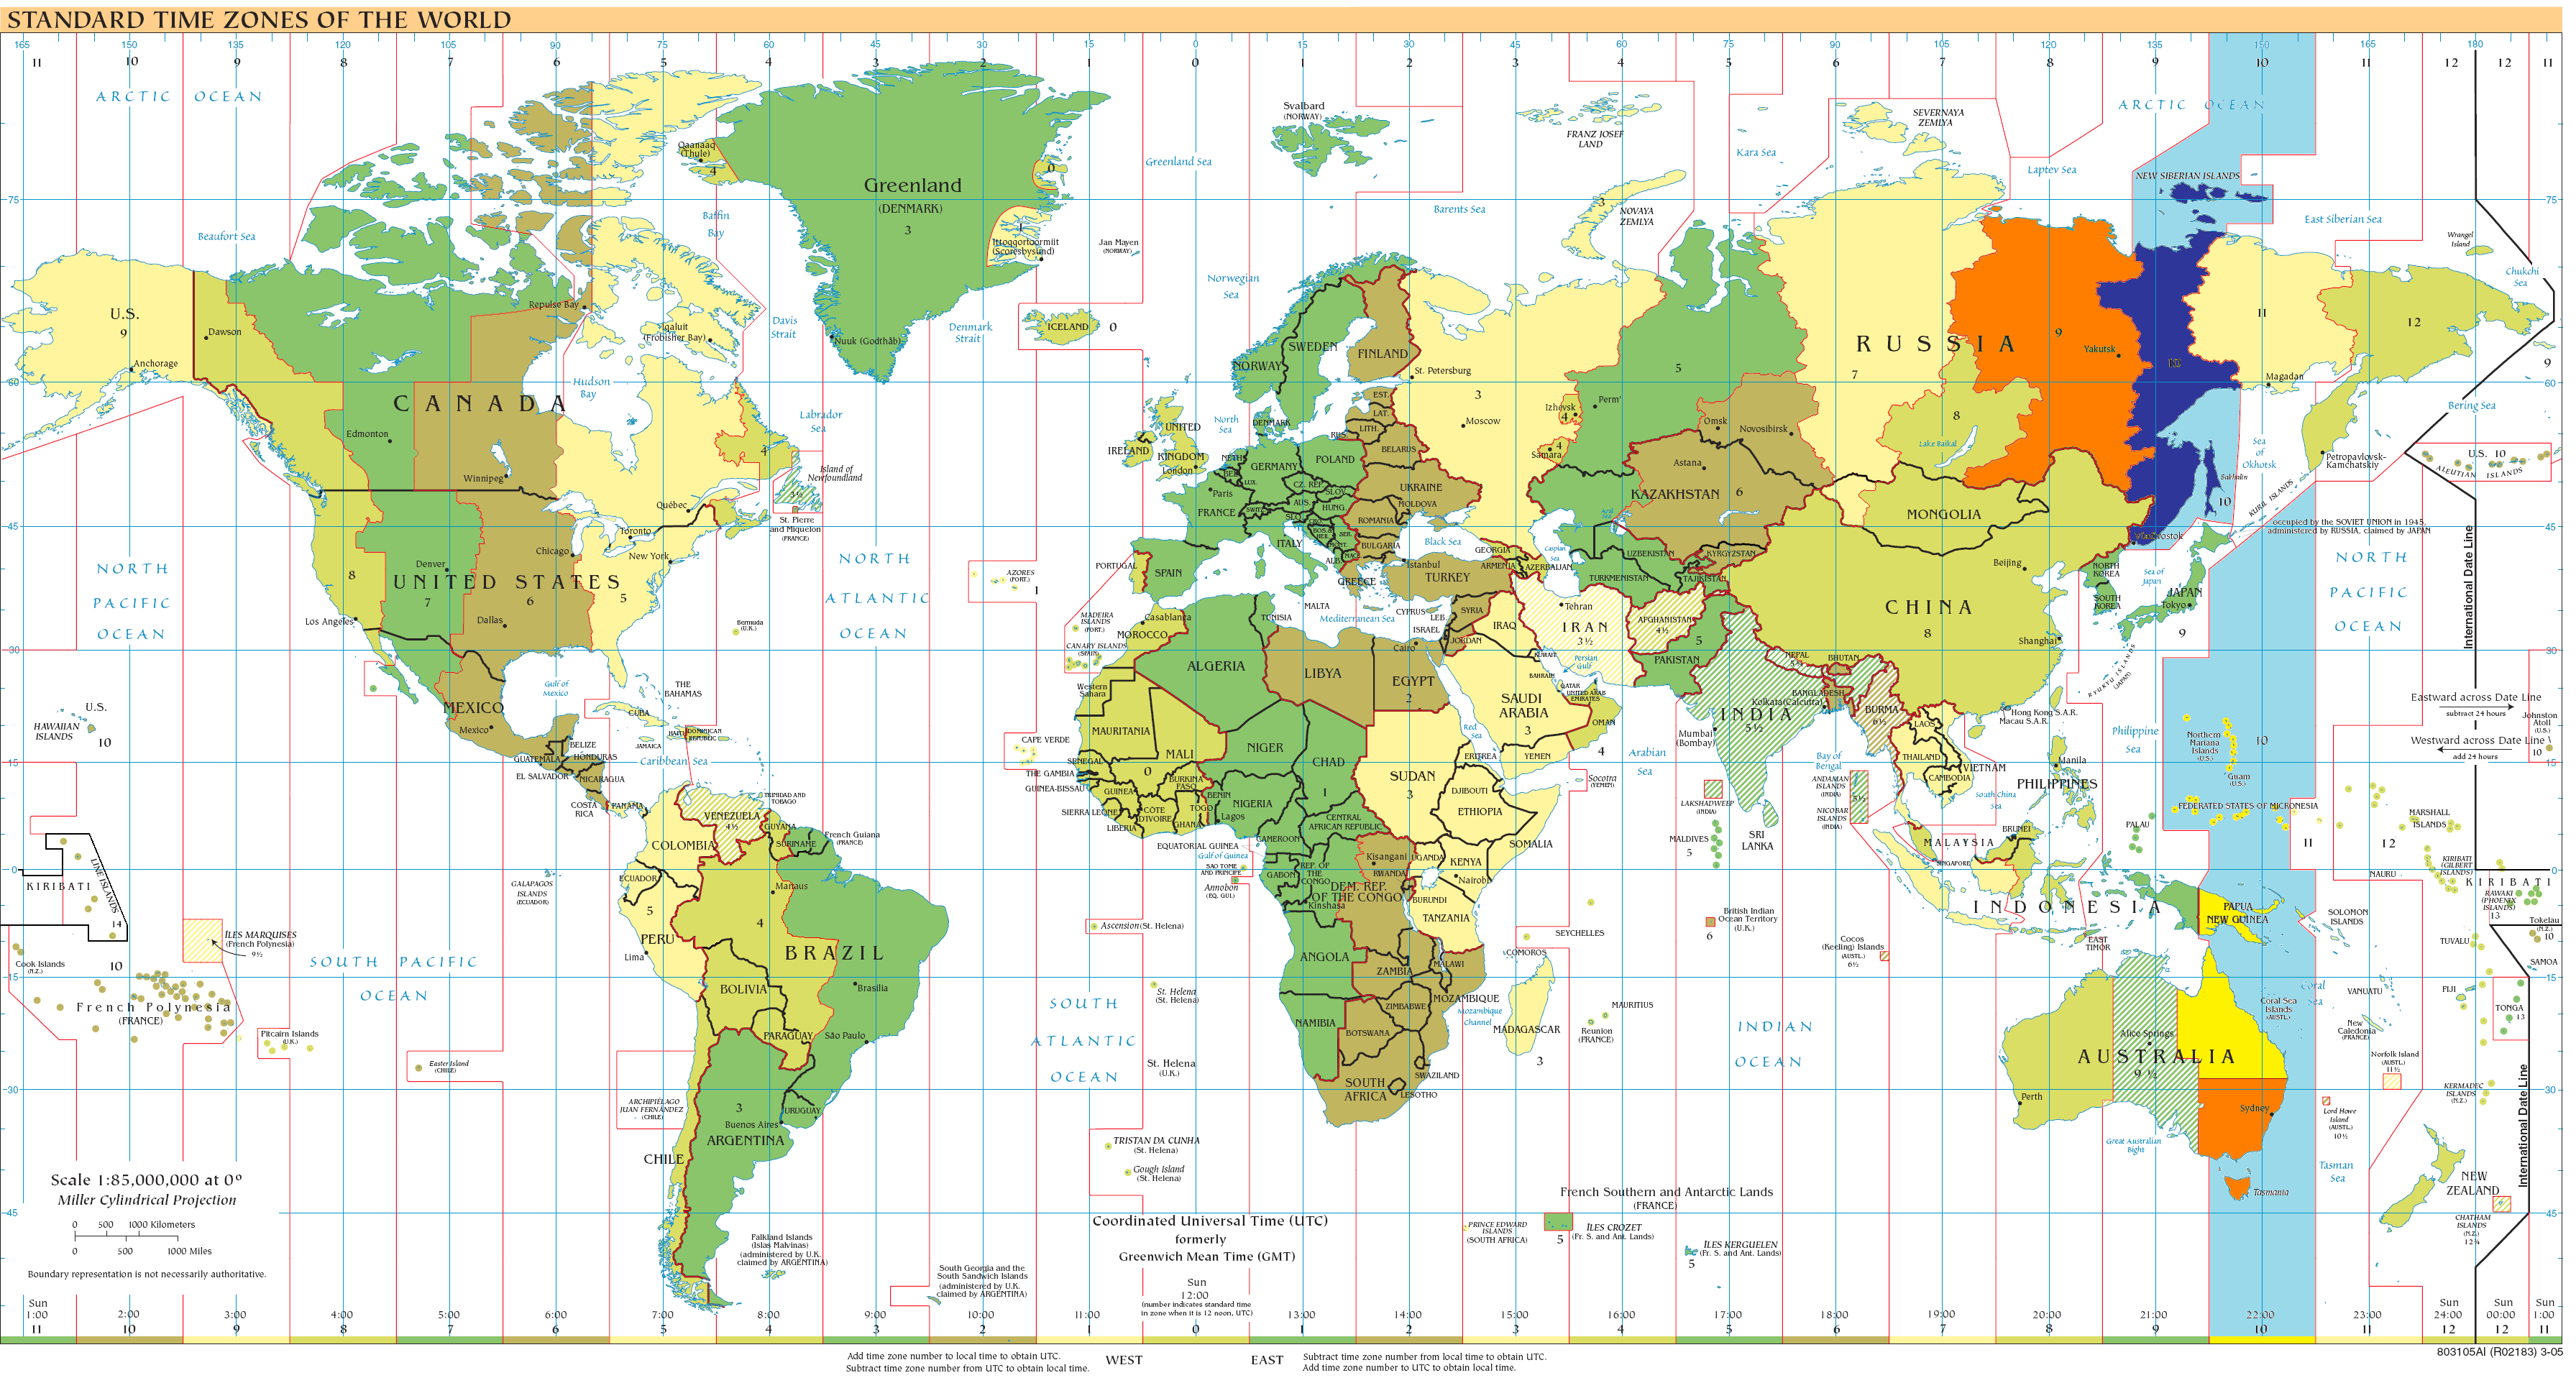 The world map pdf reducing complexity of reading the world map the world map pdf reducing complexity of reading the world map gumiabroncs Choice Image